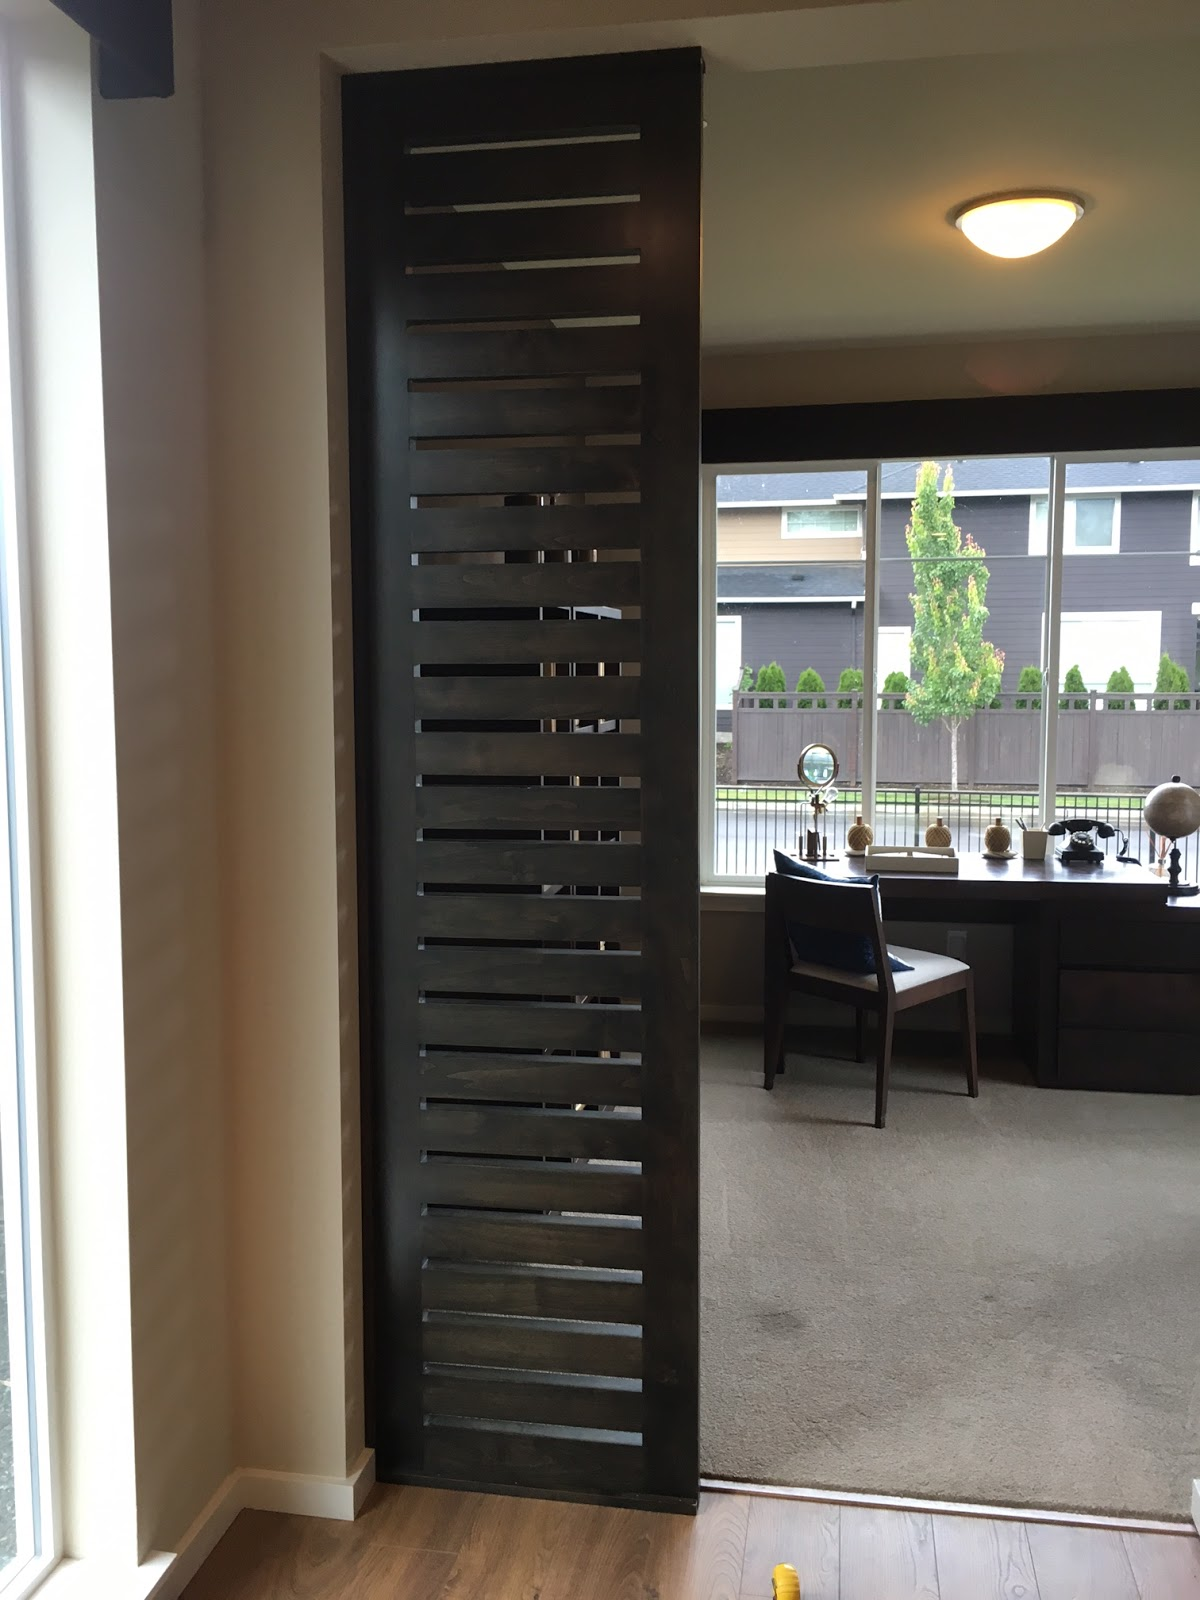 Ash and walnut llc custom built ins for your home 120 - Built in room dividers ...